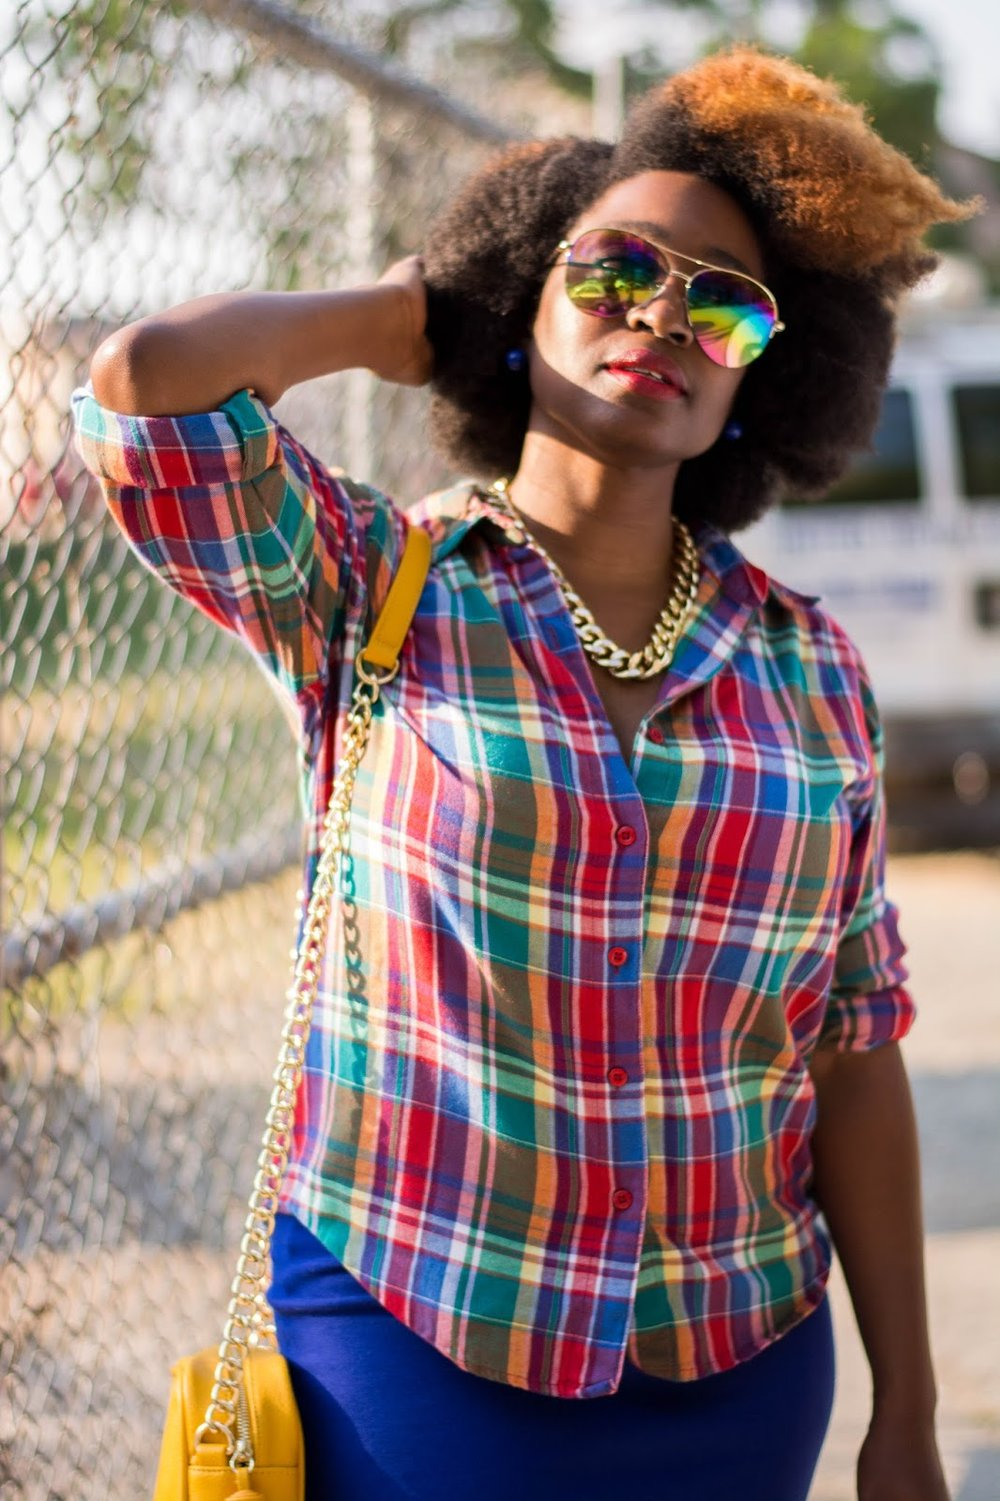 Atlanta style blogger, style blogger, Atlanta street style, Atlanta stylist, black girls rock, black blogger, black girls killing it, natural hair style, mirrored sunglasses, forever21 style, plaid shirt, shoedazzle, tassel handbag, mustard handbag, justfab, Atlanta style, Style influencer, Atlanta influencer, black girl magic, brown girl bloggers, black blogger, petite fashion, sneakers and skirts